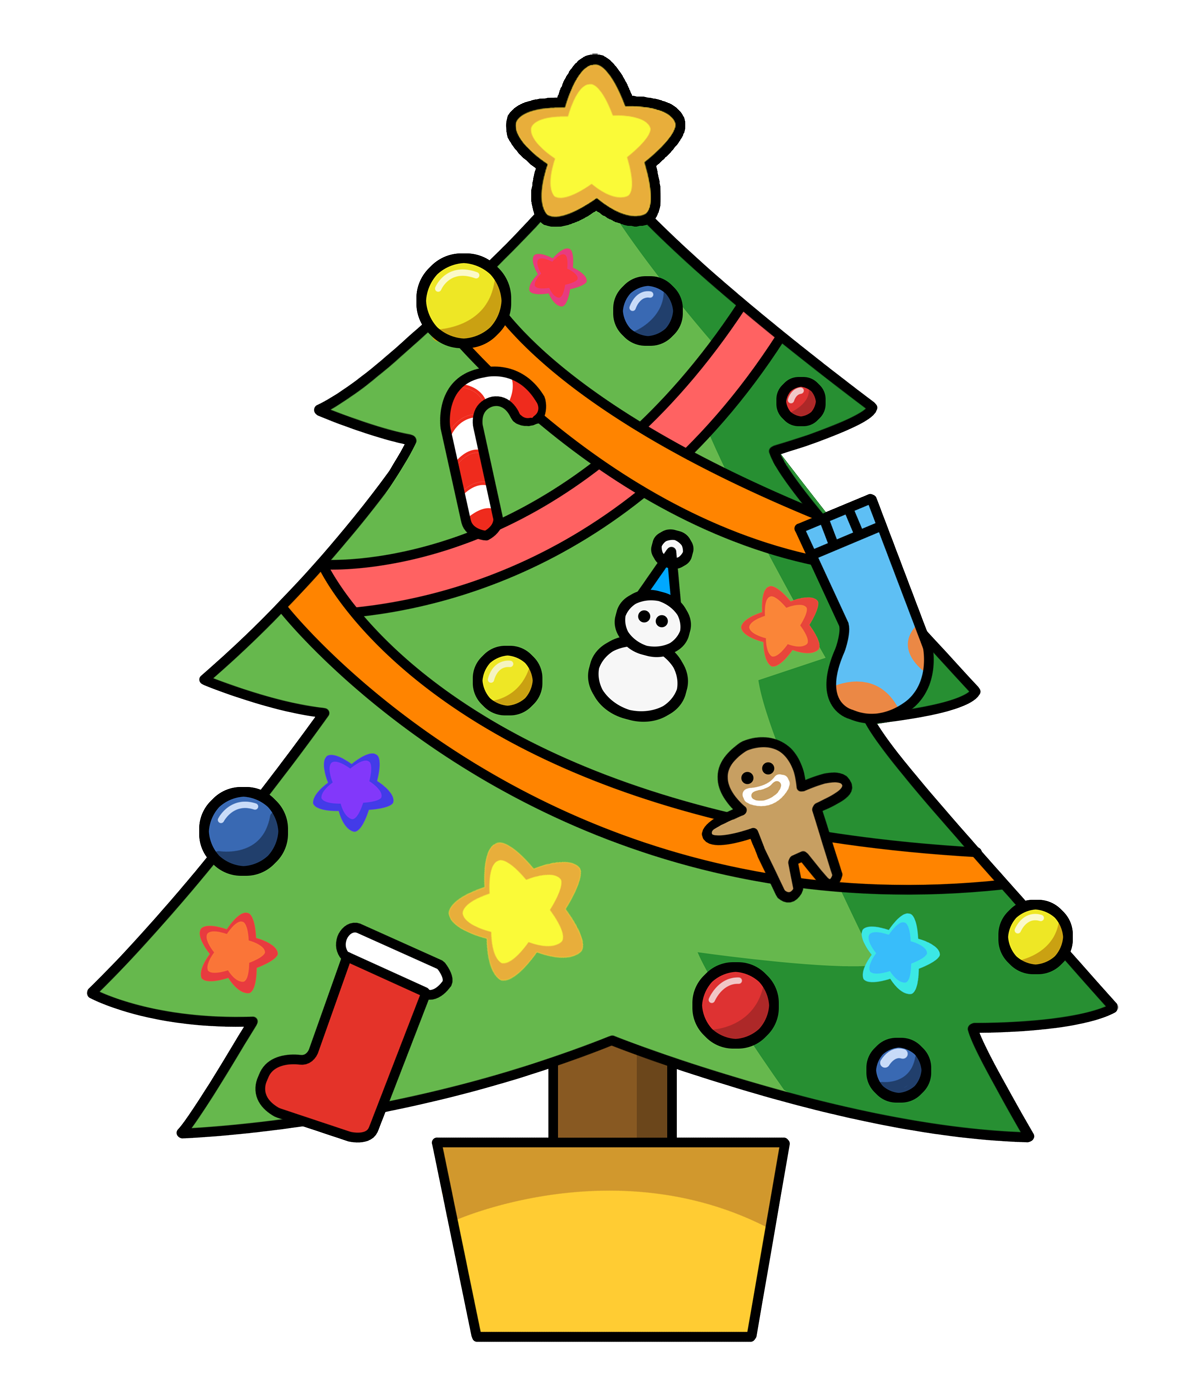 Cute christmas tree clipart clip art royalty free download Cute Christmas Tree Clipart at GetDrawings.com | Free for personal ... clip art royalty free download